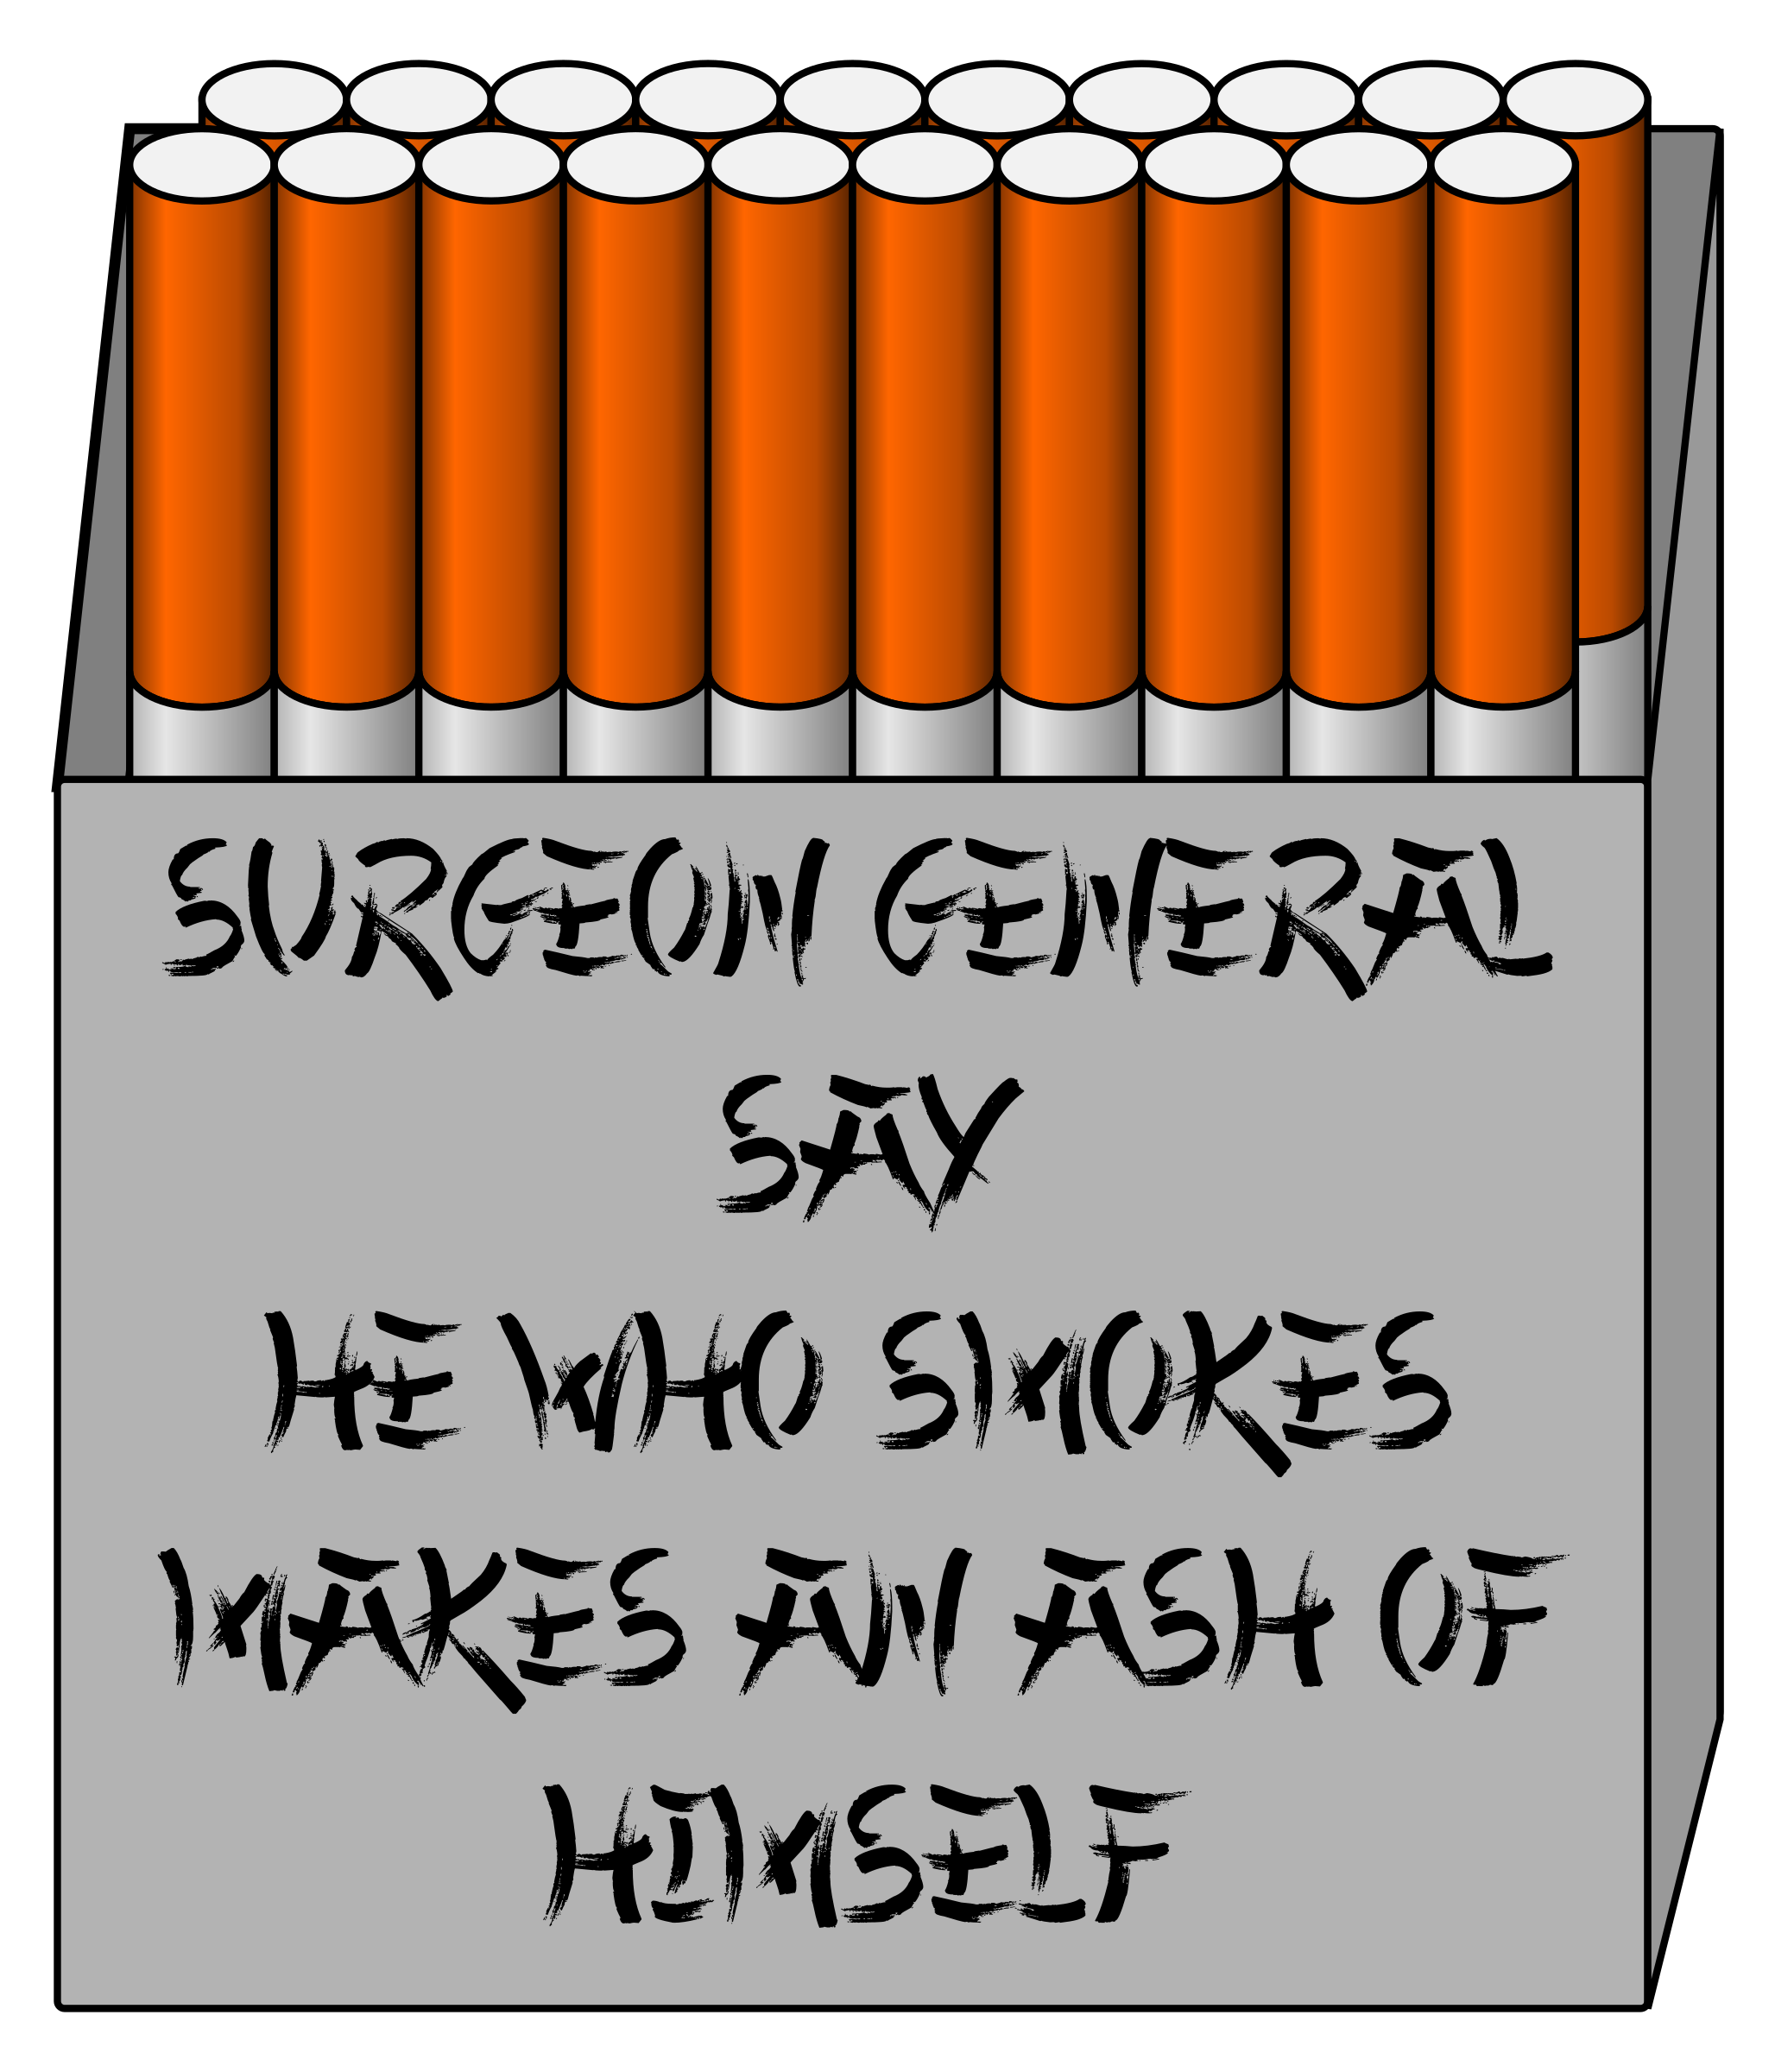 Surgeon General Advice by GDJ